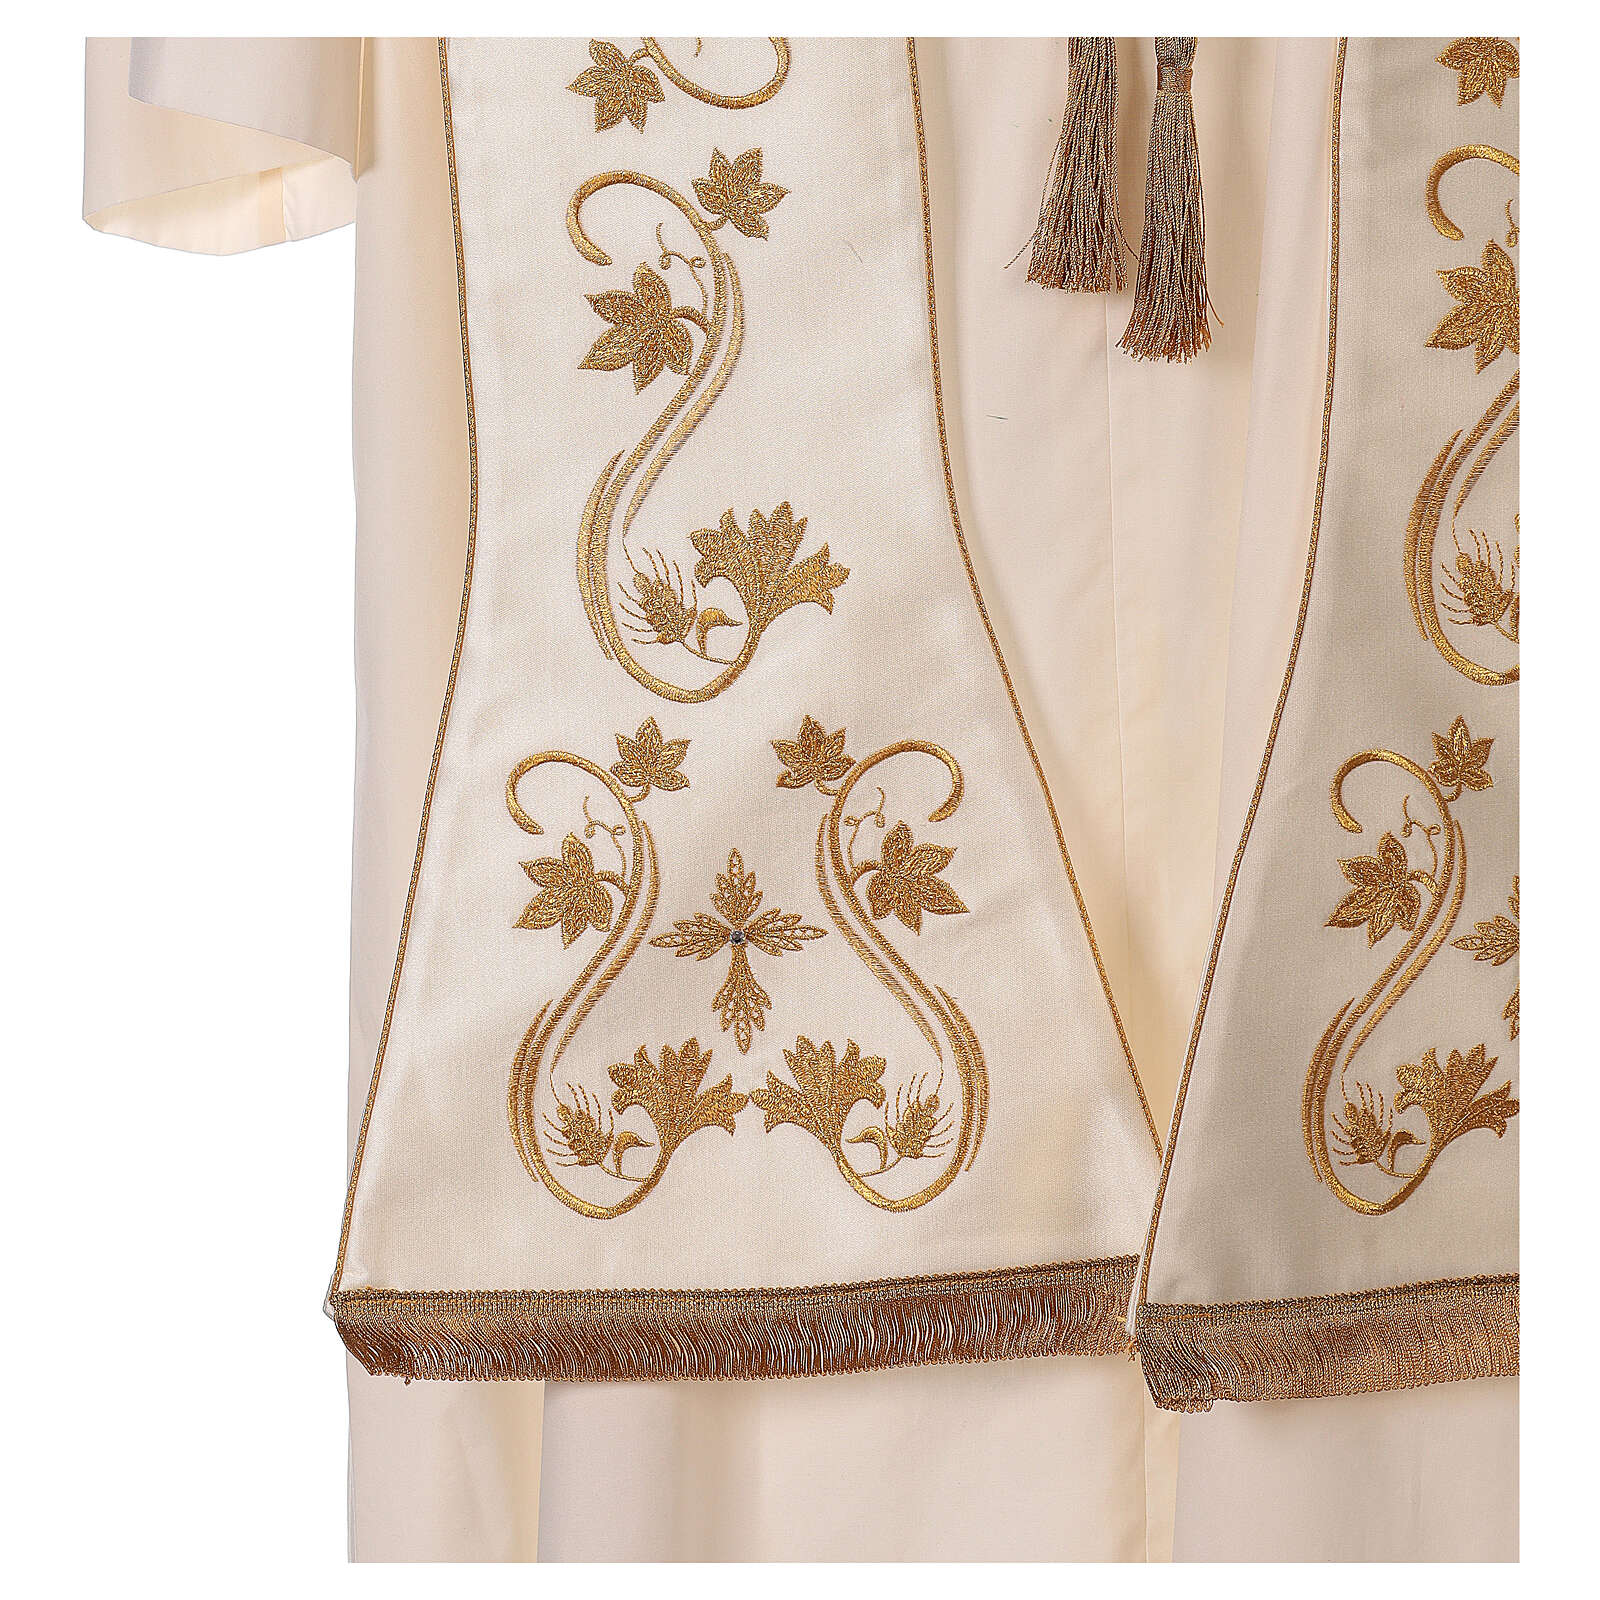 Roman stole, embroidered 4